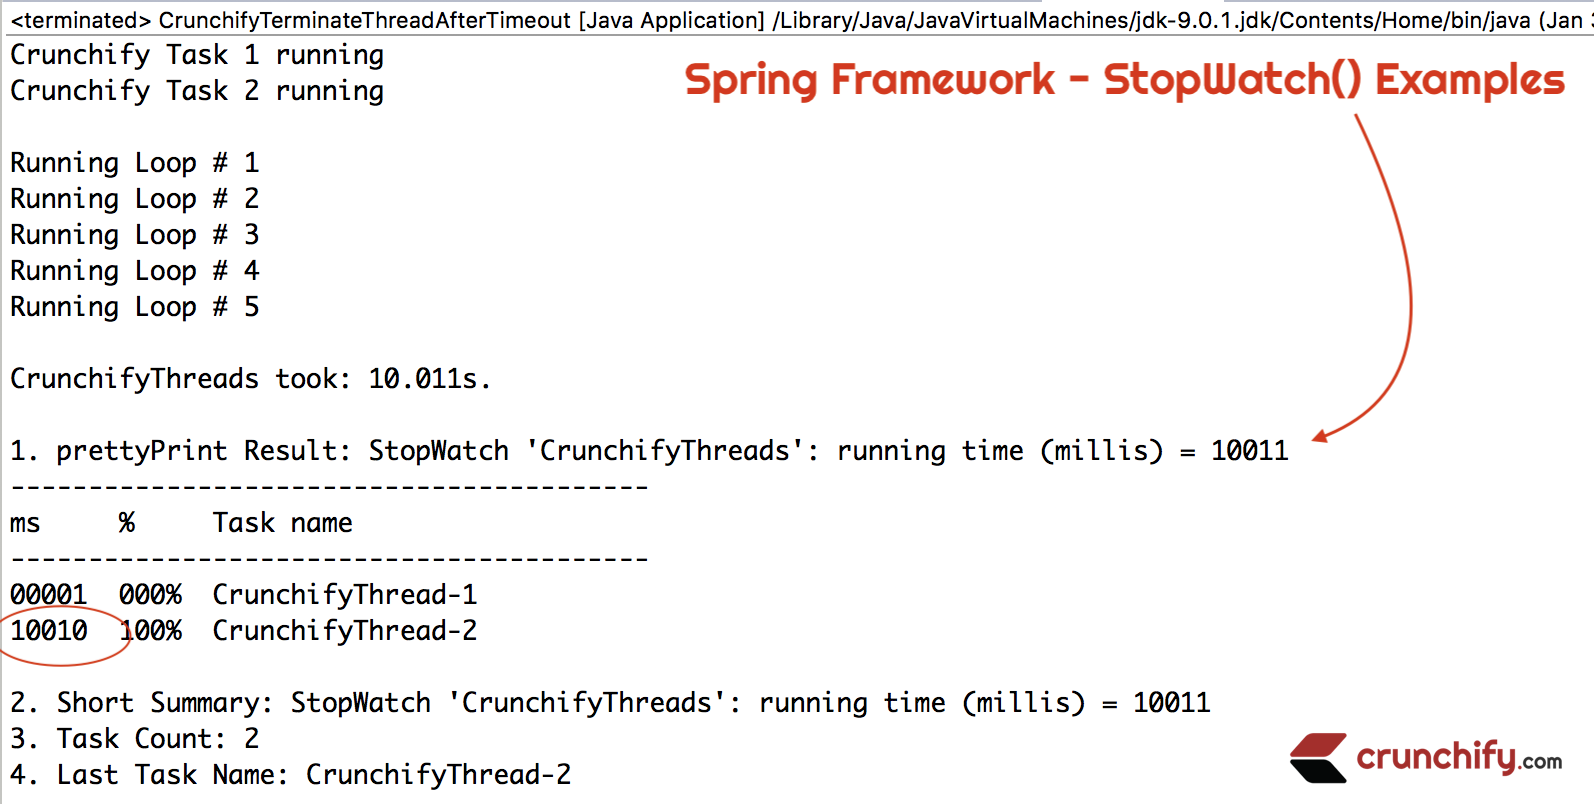 How to use Spring Framework StopWatch() to Log ExecutionTime